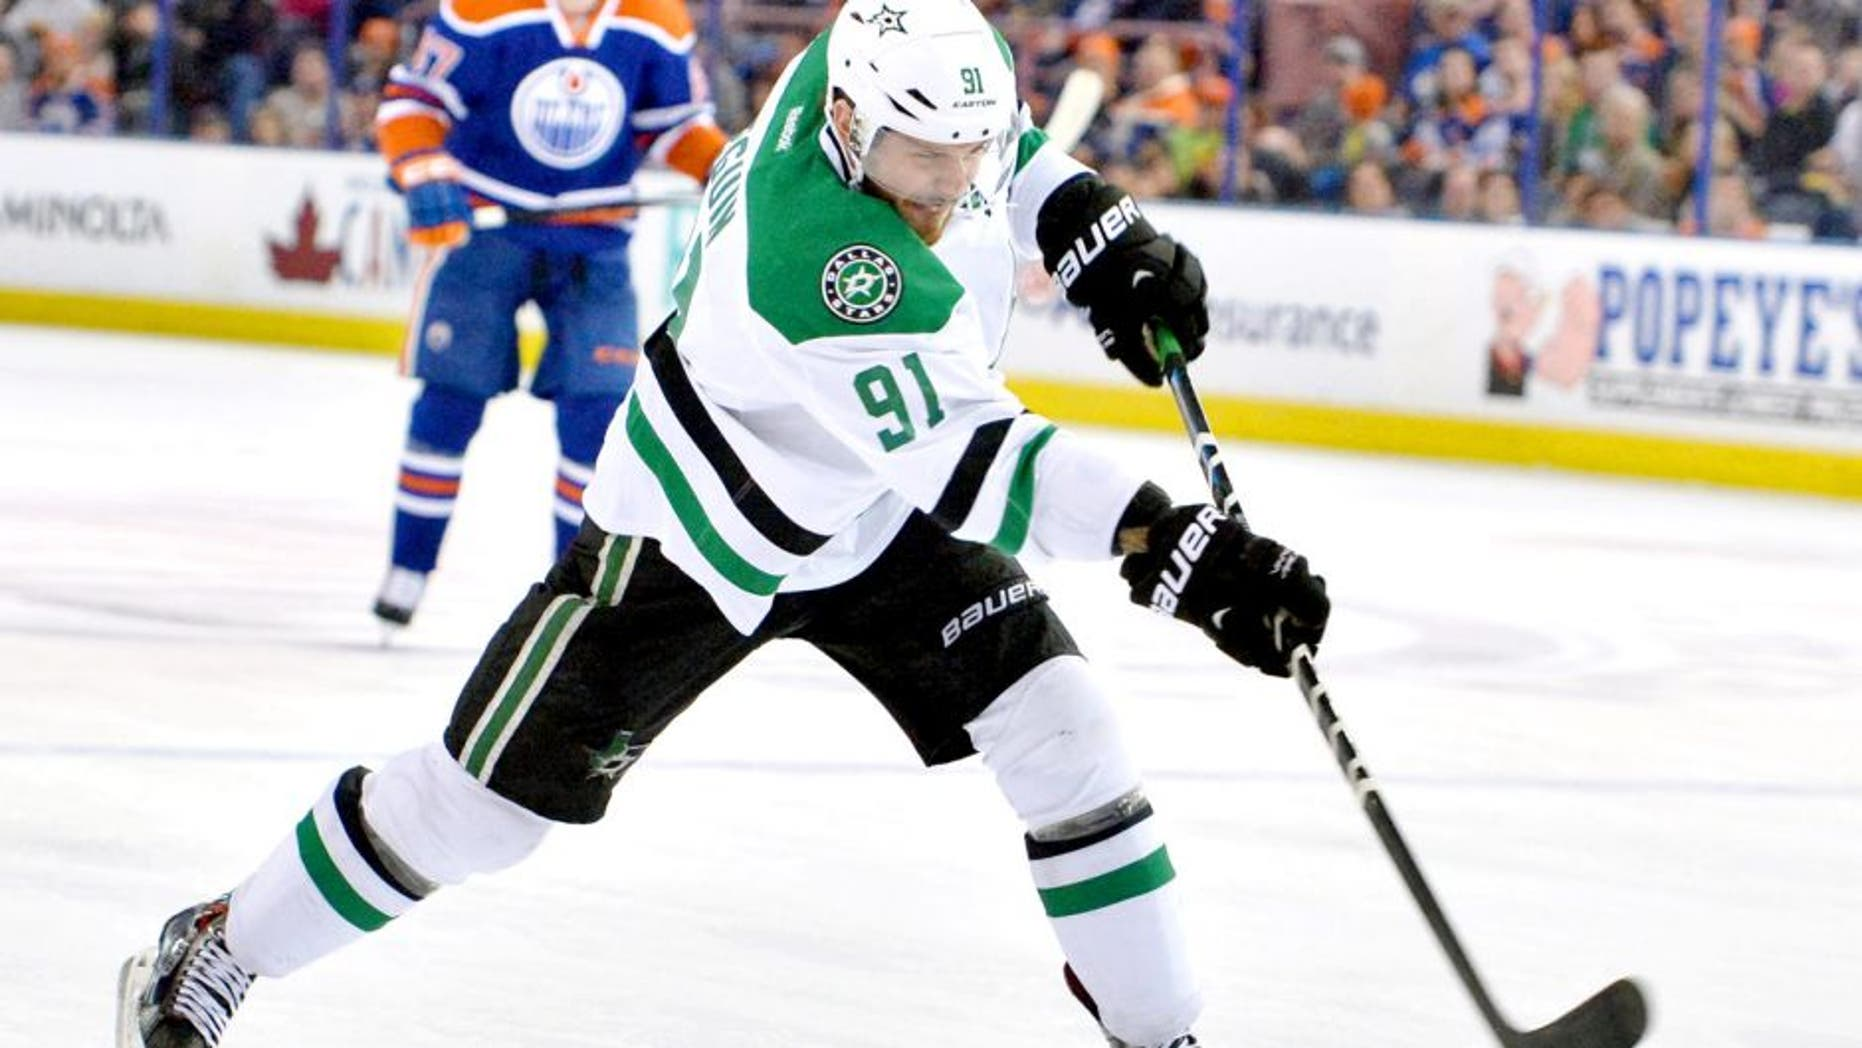 Mar 27, 2015; Edmonton, Alberta, CAN; Dallas Stars center Tyler Seguin (91) takes a slap shot against the Edmonton Oilers in the second period at Rexall Place. Mandatory Credit: Chris LaFrance-USA TODAY Sports